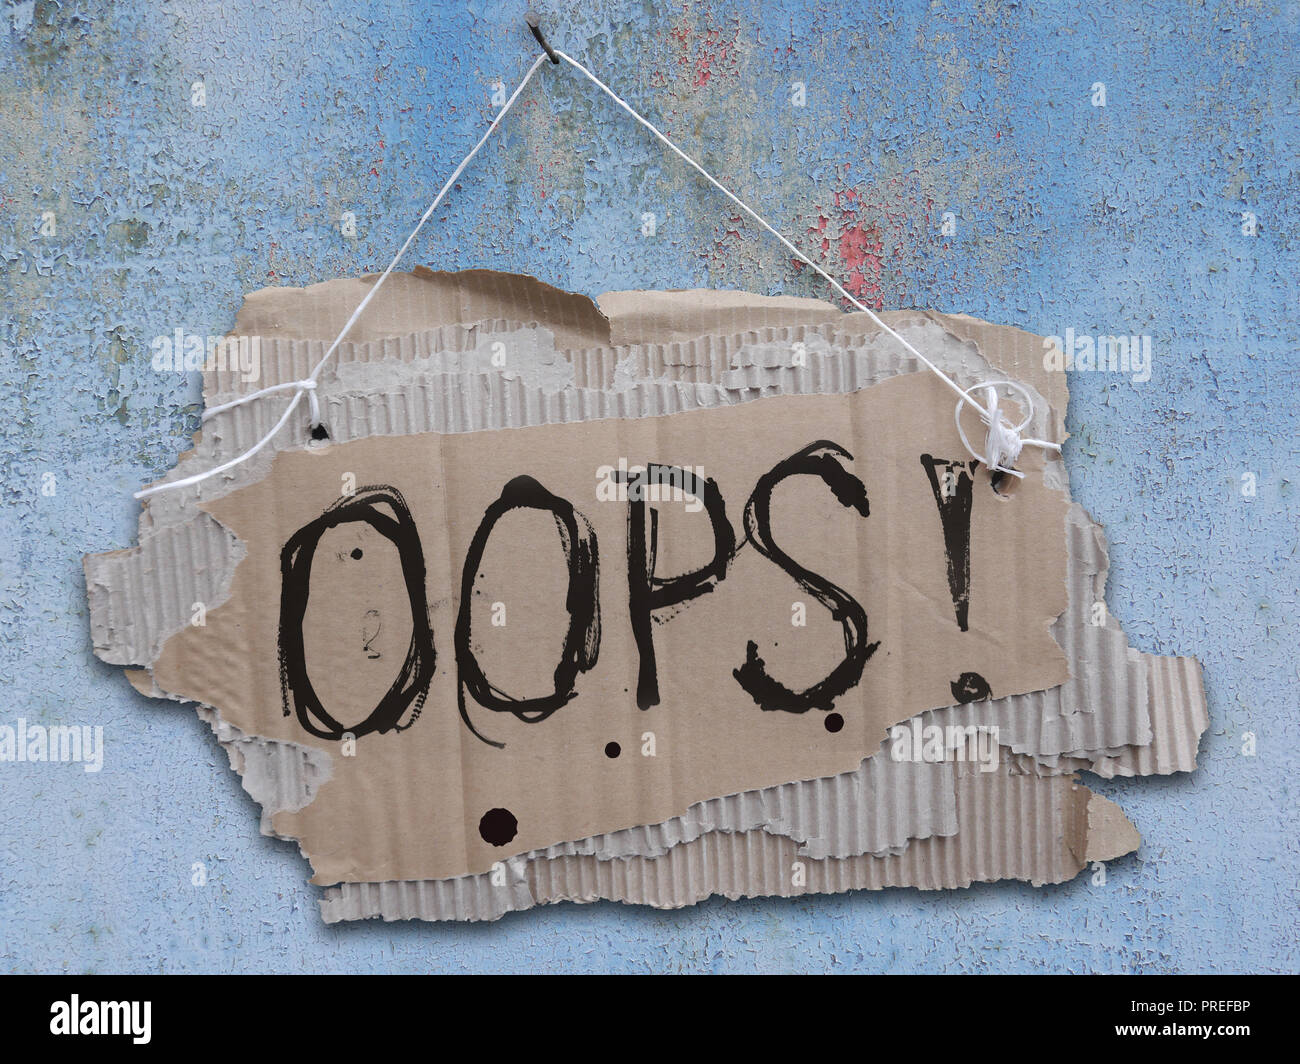 Cardboard sign on a cord with a words OOPS. Ripped, corrugated paper with white sign OOPS hanging on a nail on a cracked wall. - Stock Image